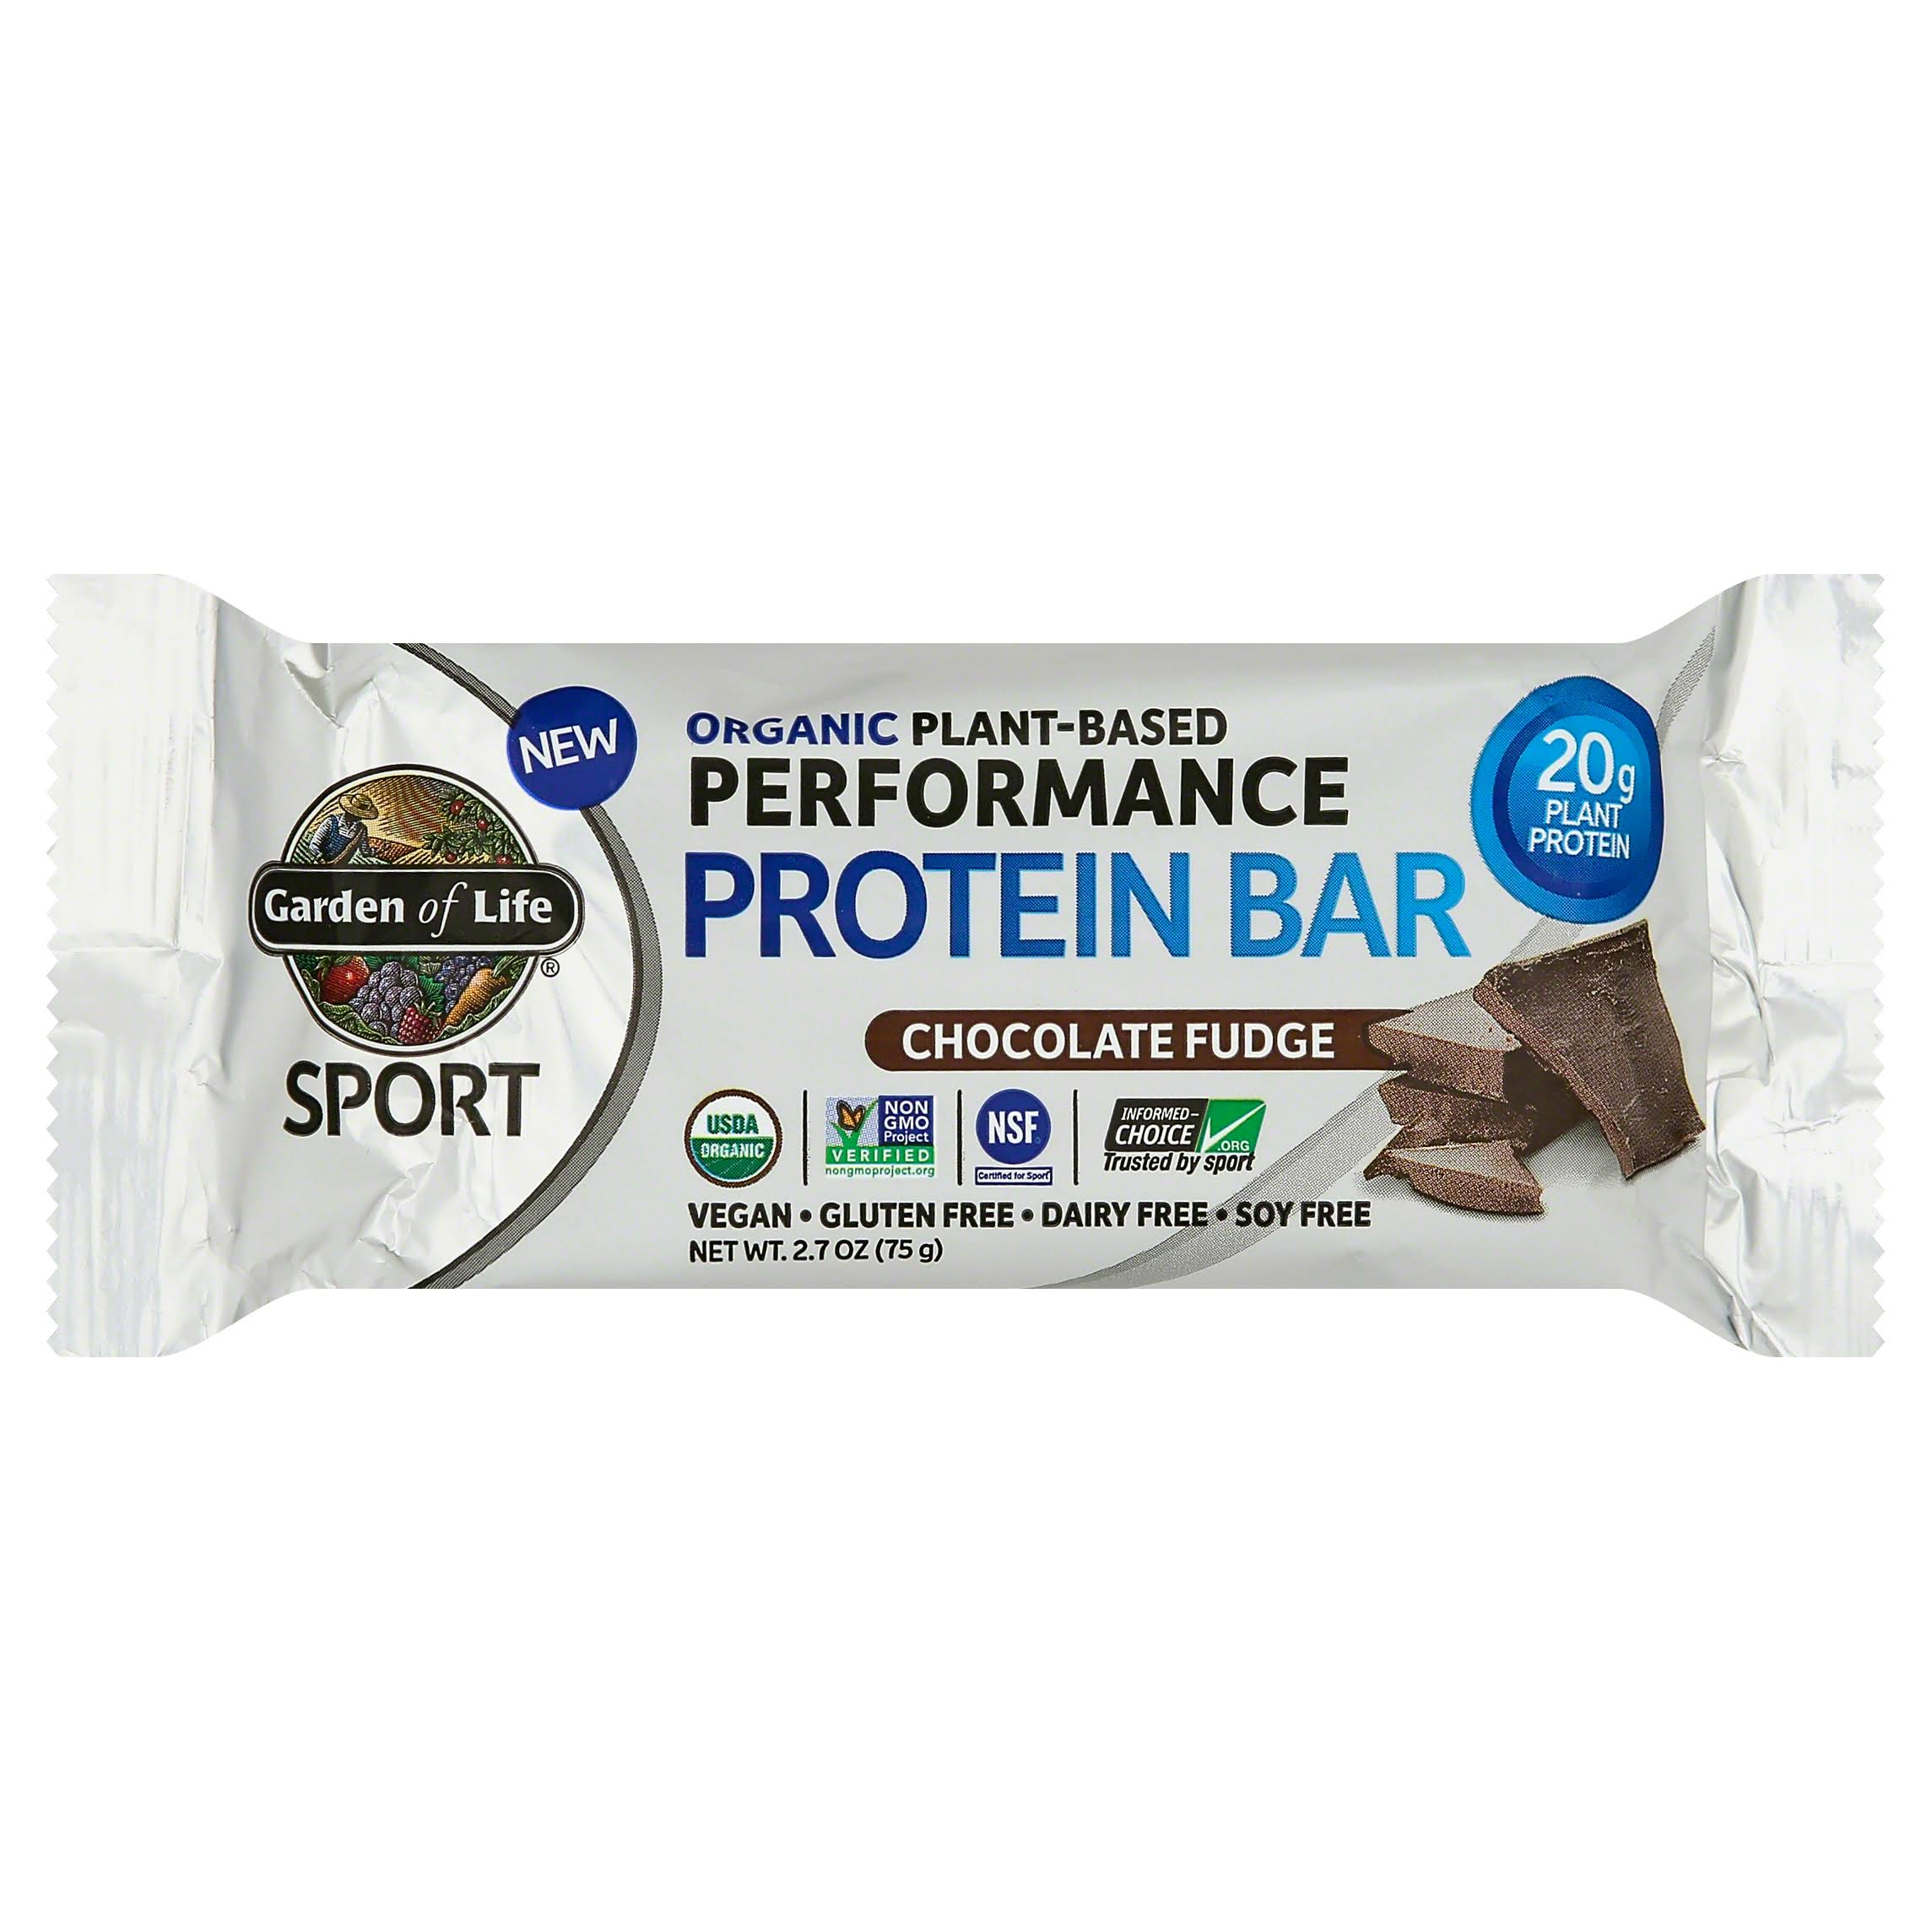 Garden of Life Sport Protein Bar, Performance, Organic Plant-Based, Chocolate Fudge - 2.7 oz